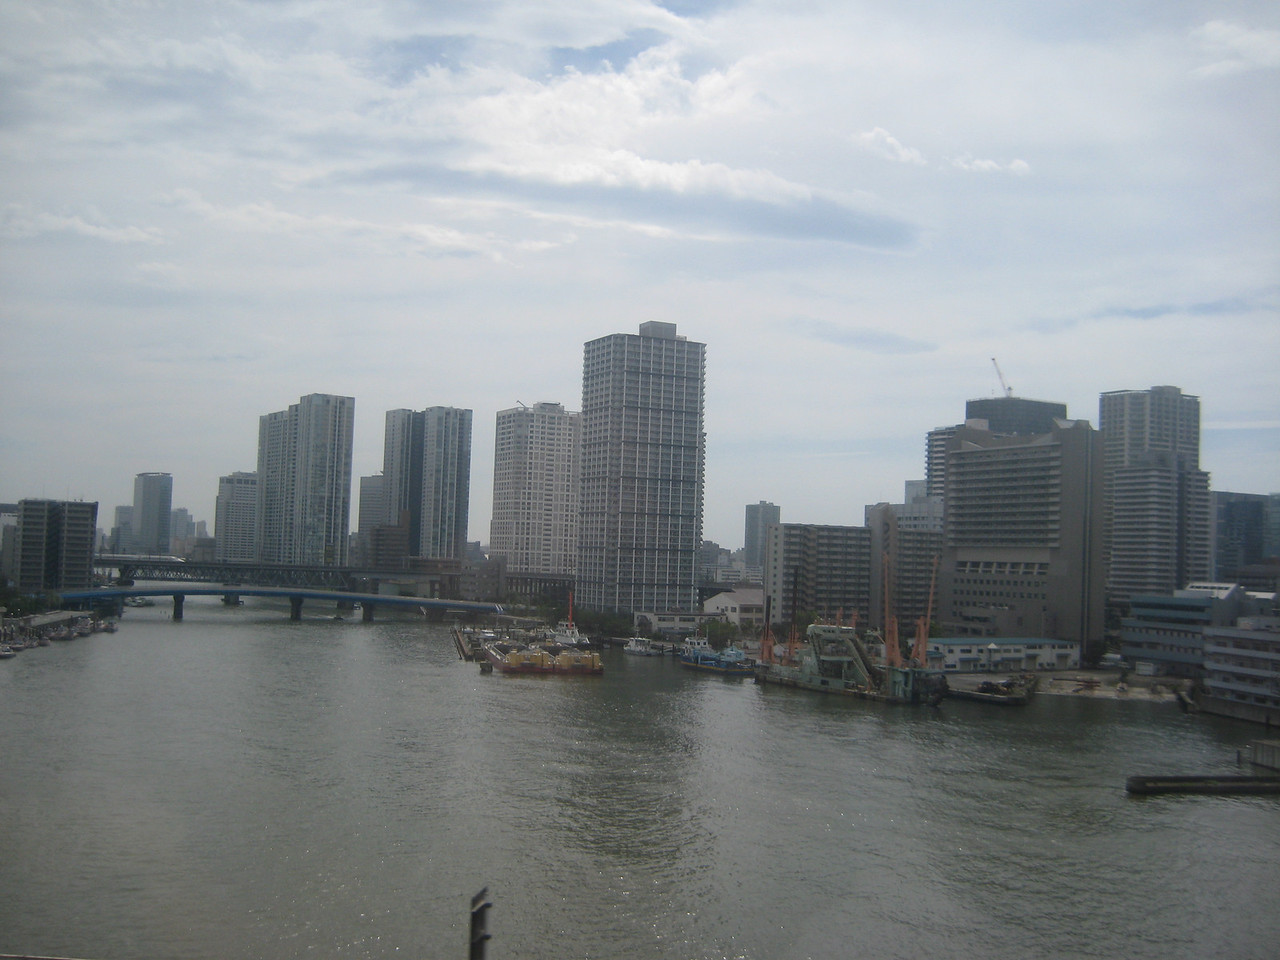 Taken during train ride around Tokyo Bay